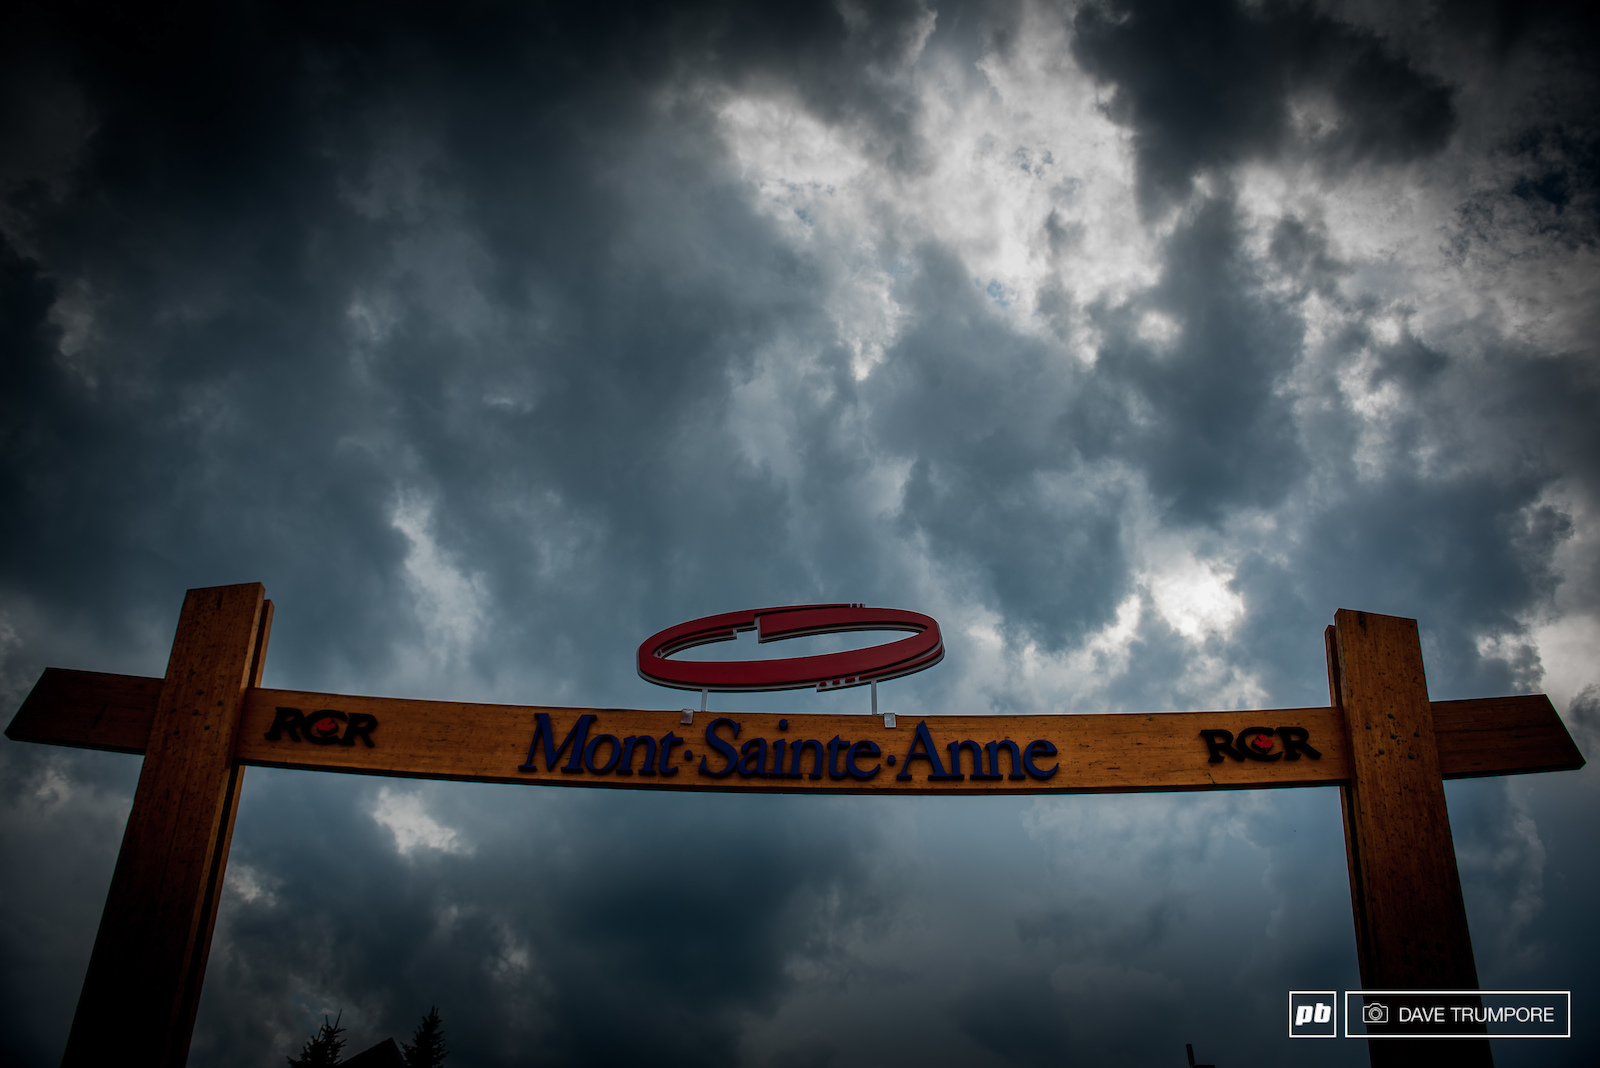 The skies are looking a bit ominous here in Mont Sainte Anne.